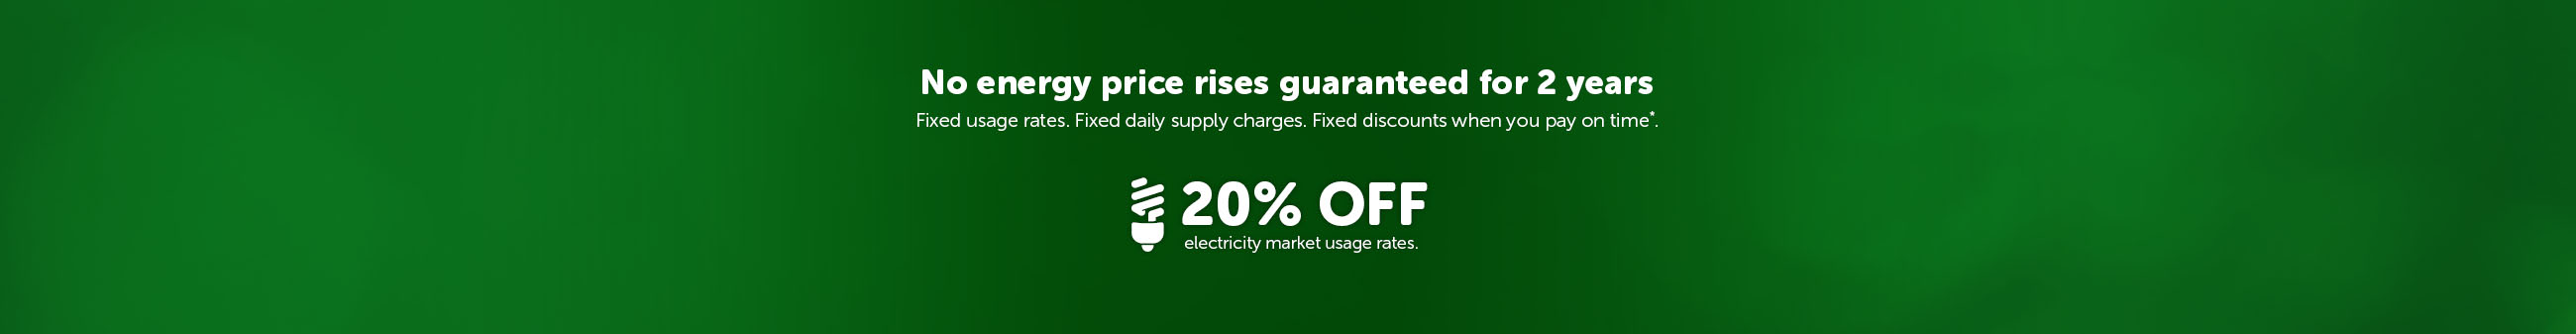 No price rises guaranteed for 2 years. Fixed usage rates. Fixed daily supply charges. Fixed discounts when you pay on time*. 18% off electricity market usage rates.